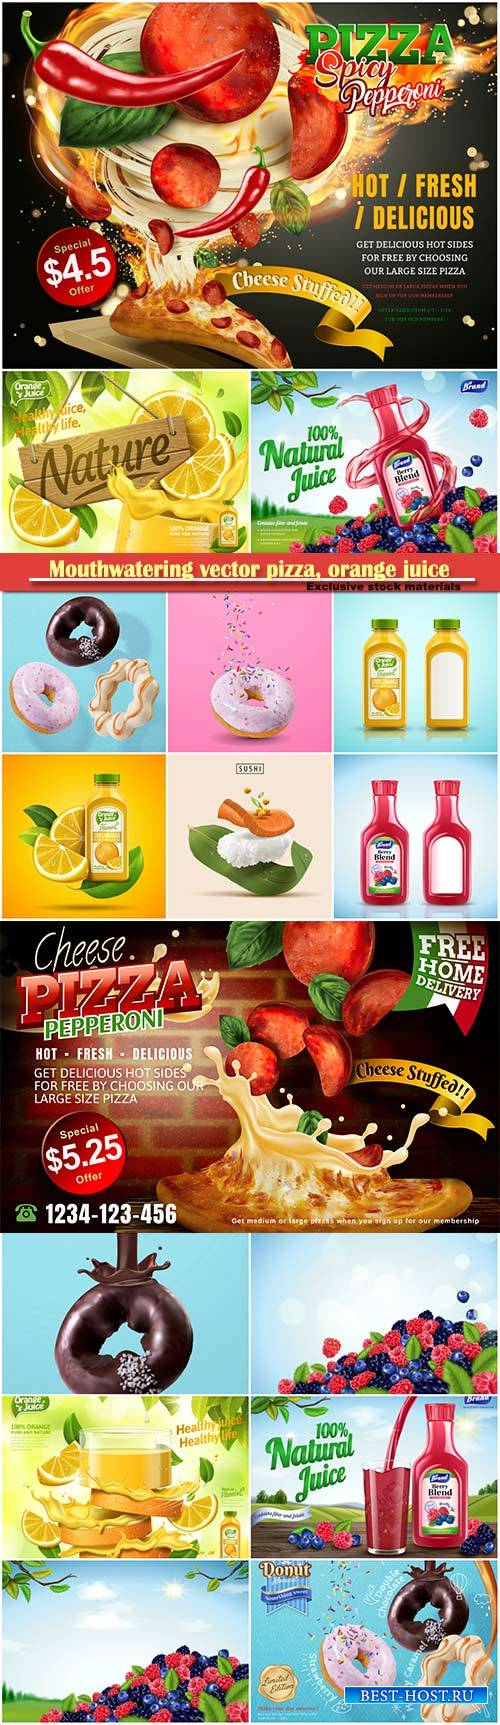 Mouthwatering vector pizza, orange juice, natural berry blend juice, tasty  ...